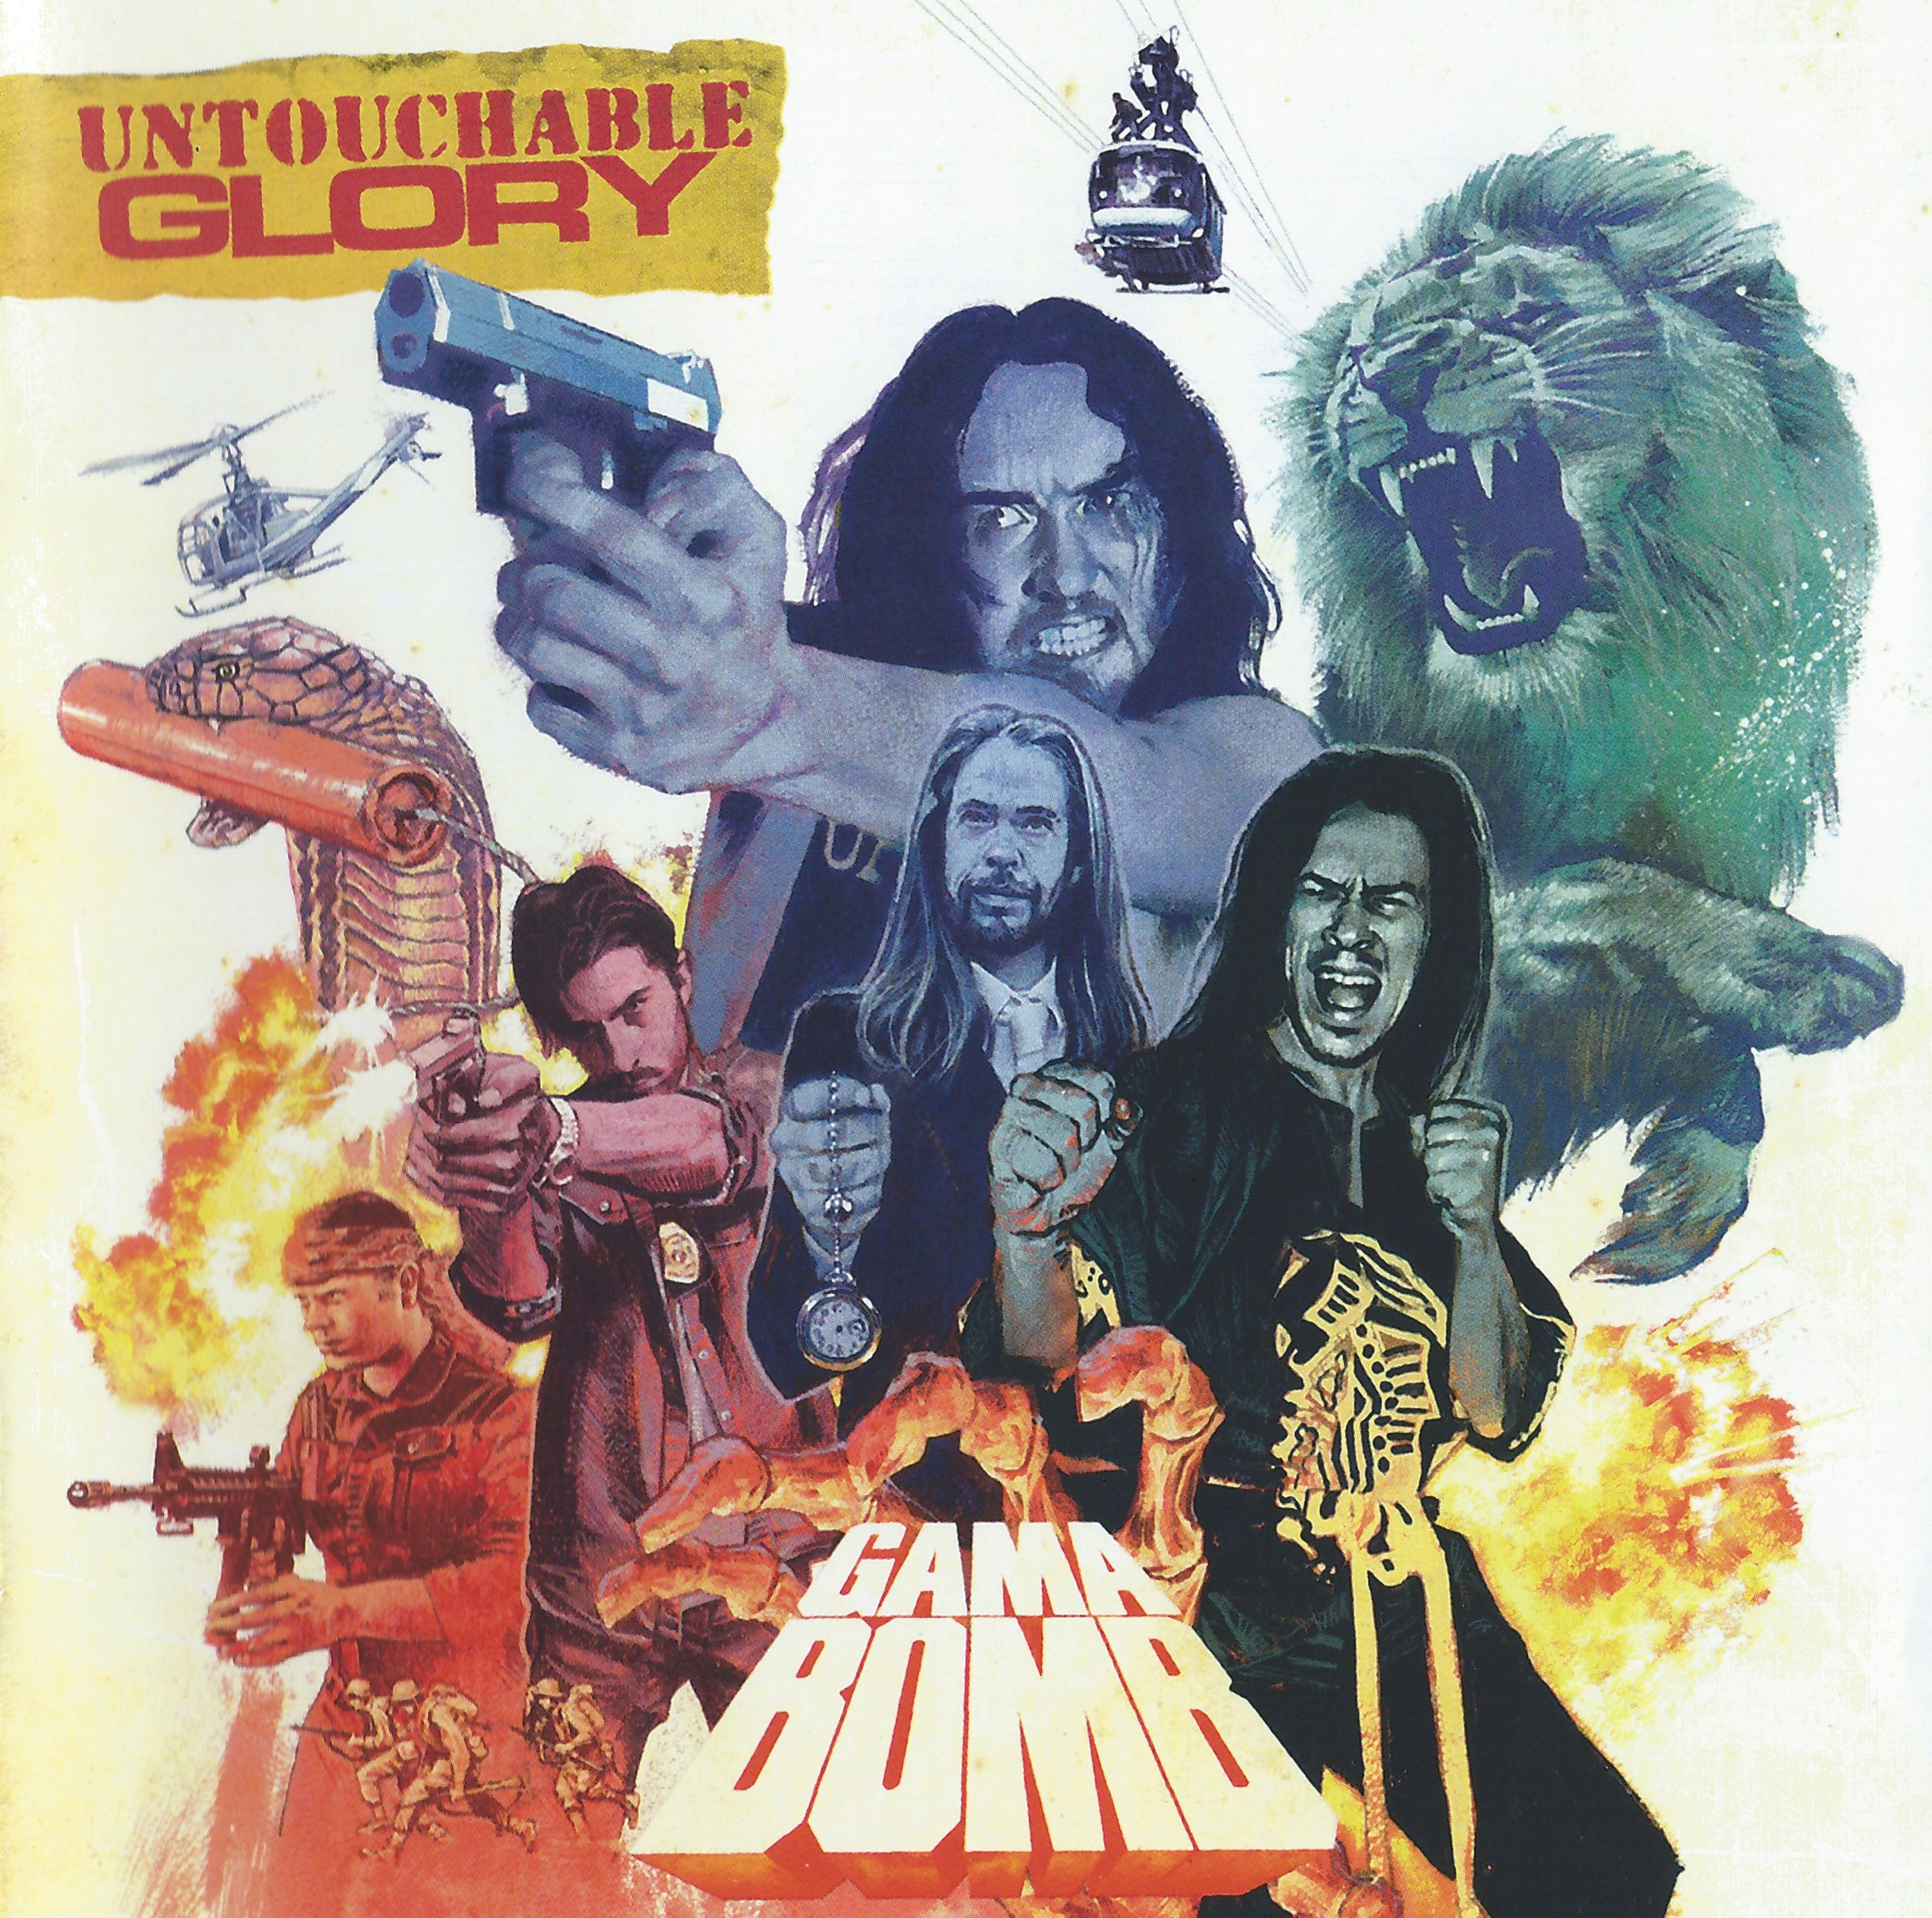 Gama Bomb - Untouchable Glory - 2015